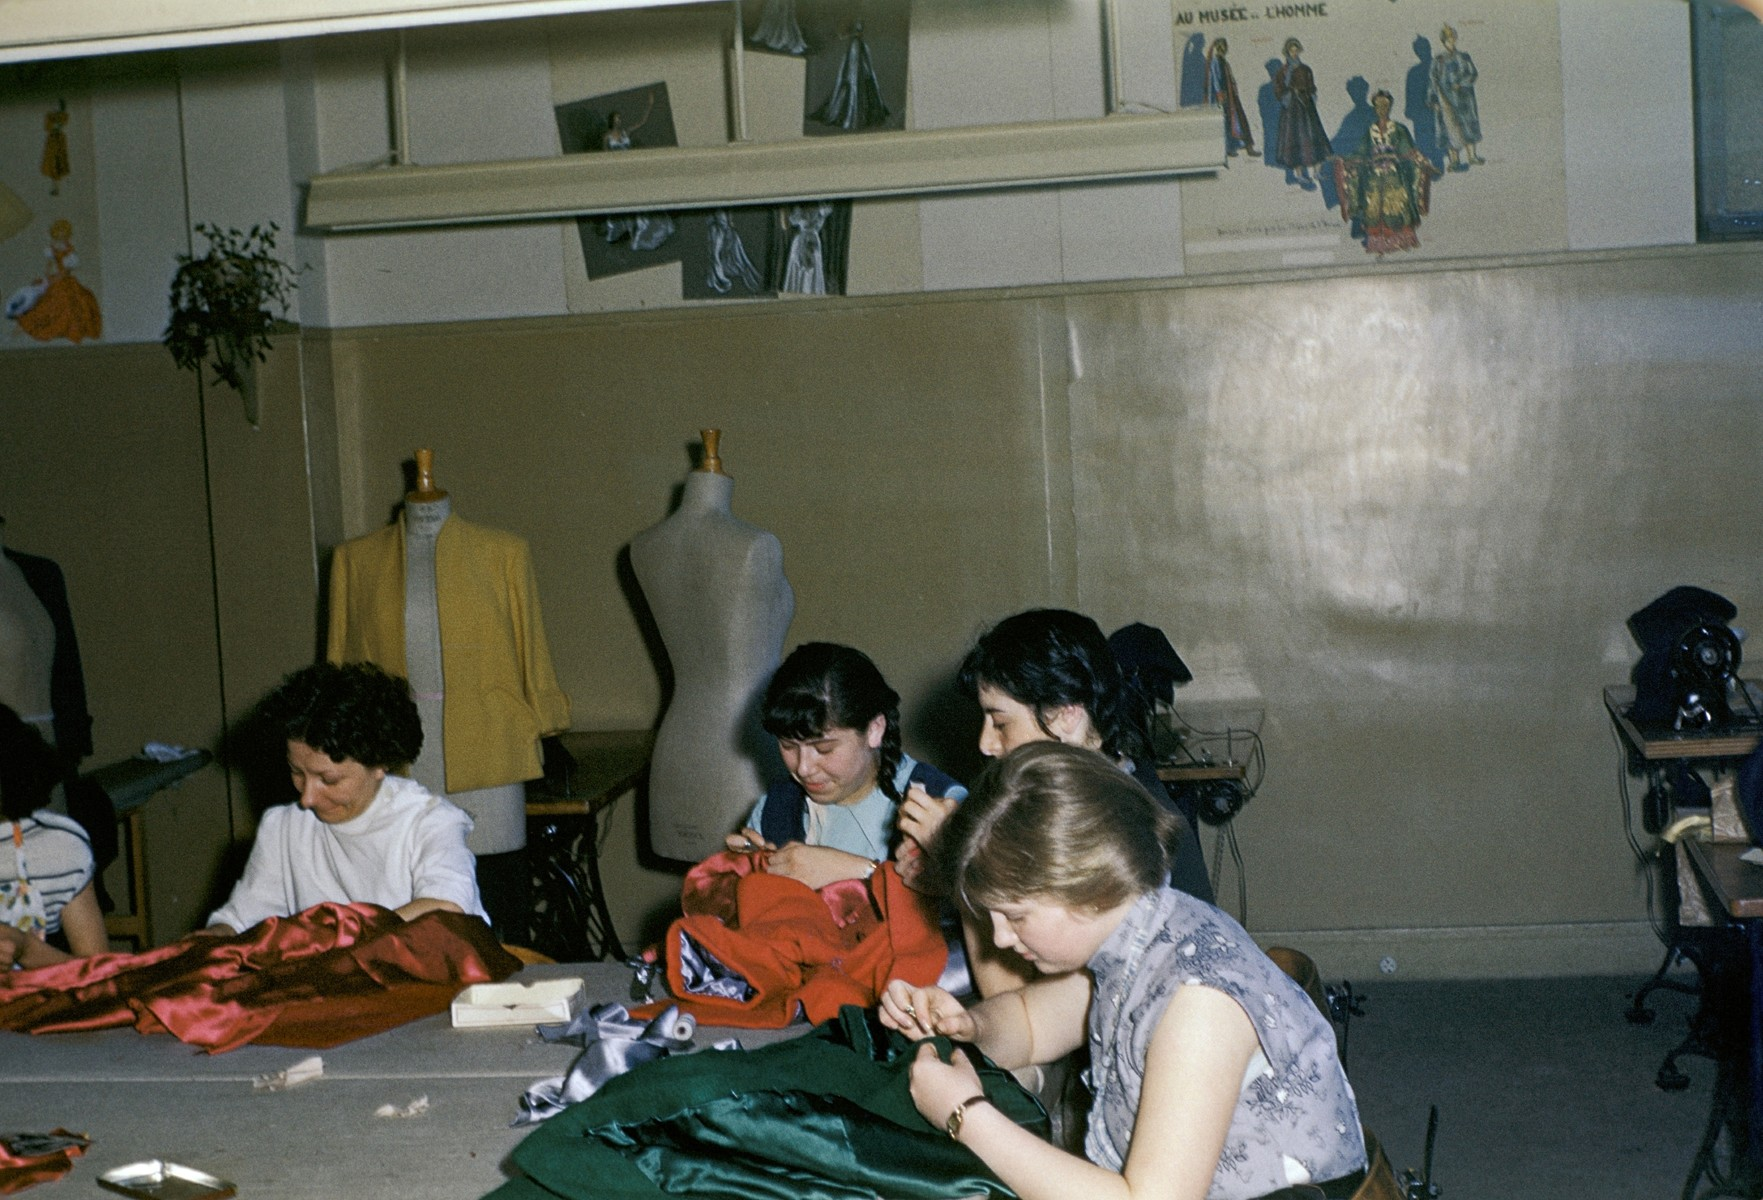 Jewish women learn sewing and tailoring in an ORT workshop in an unidentified DP camp.